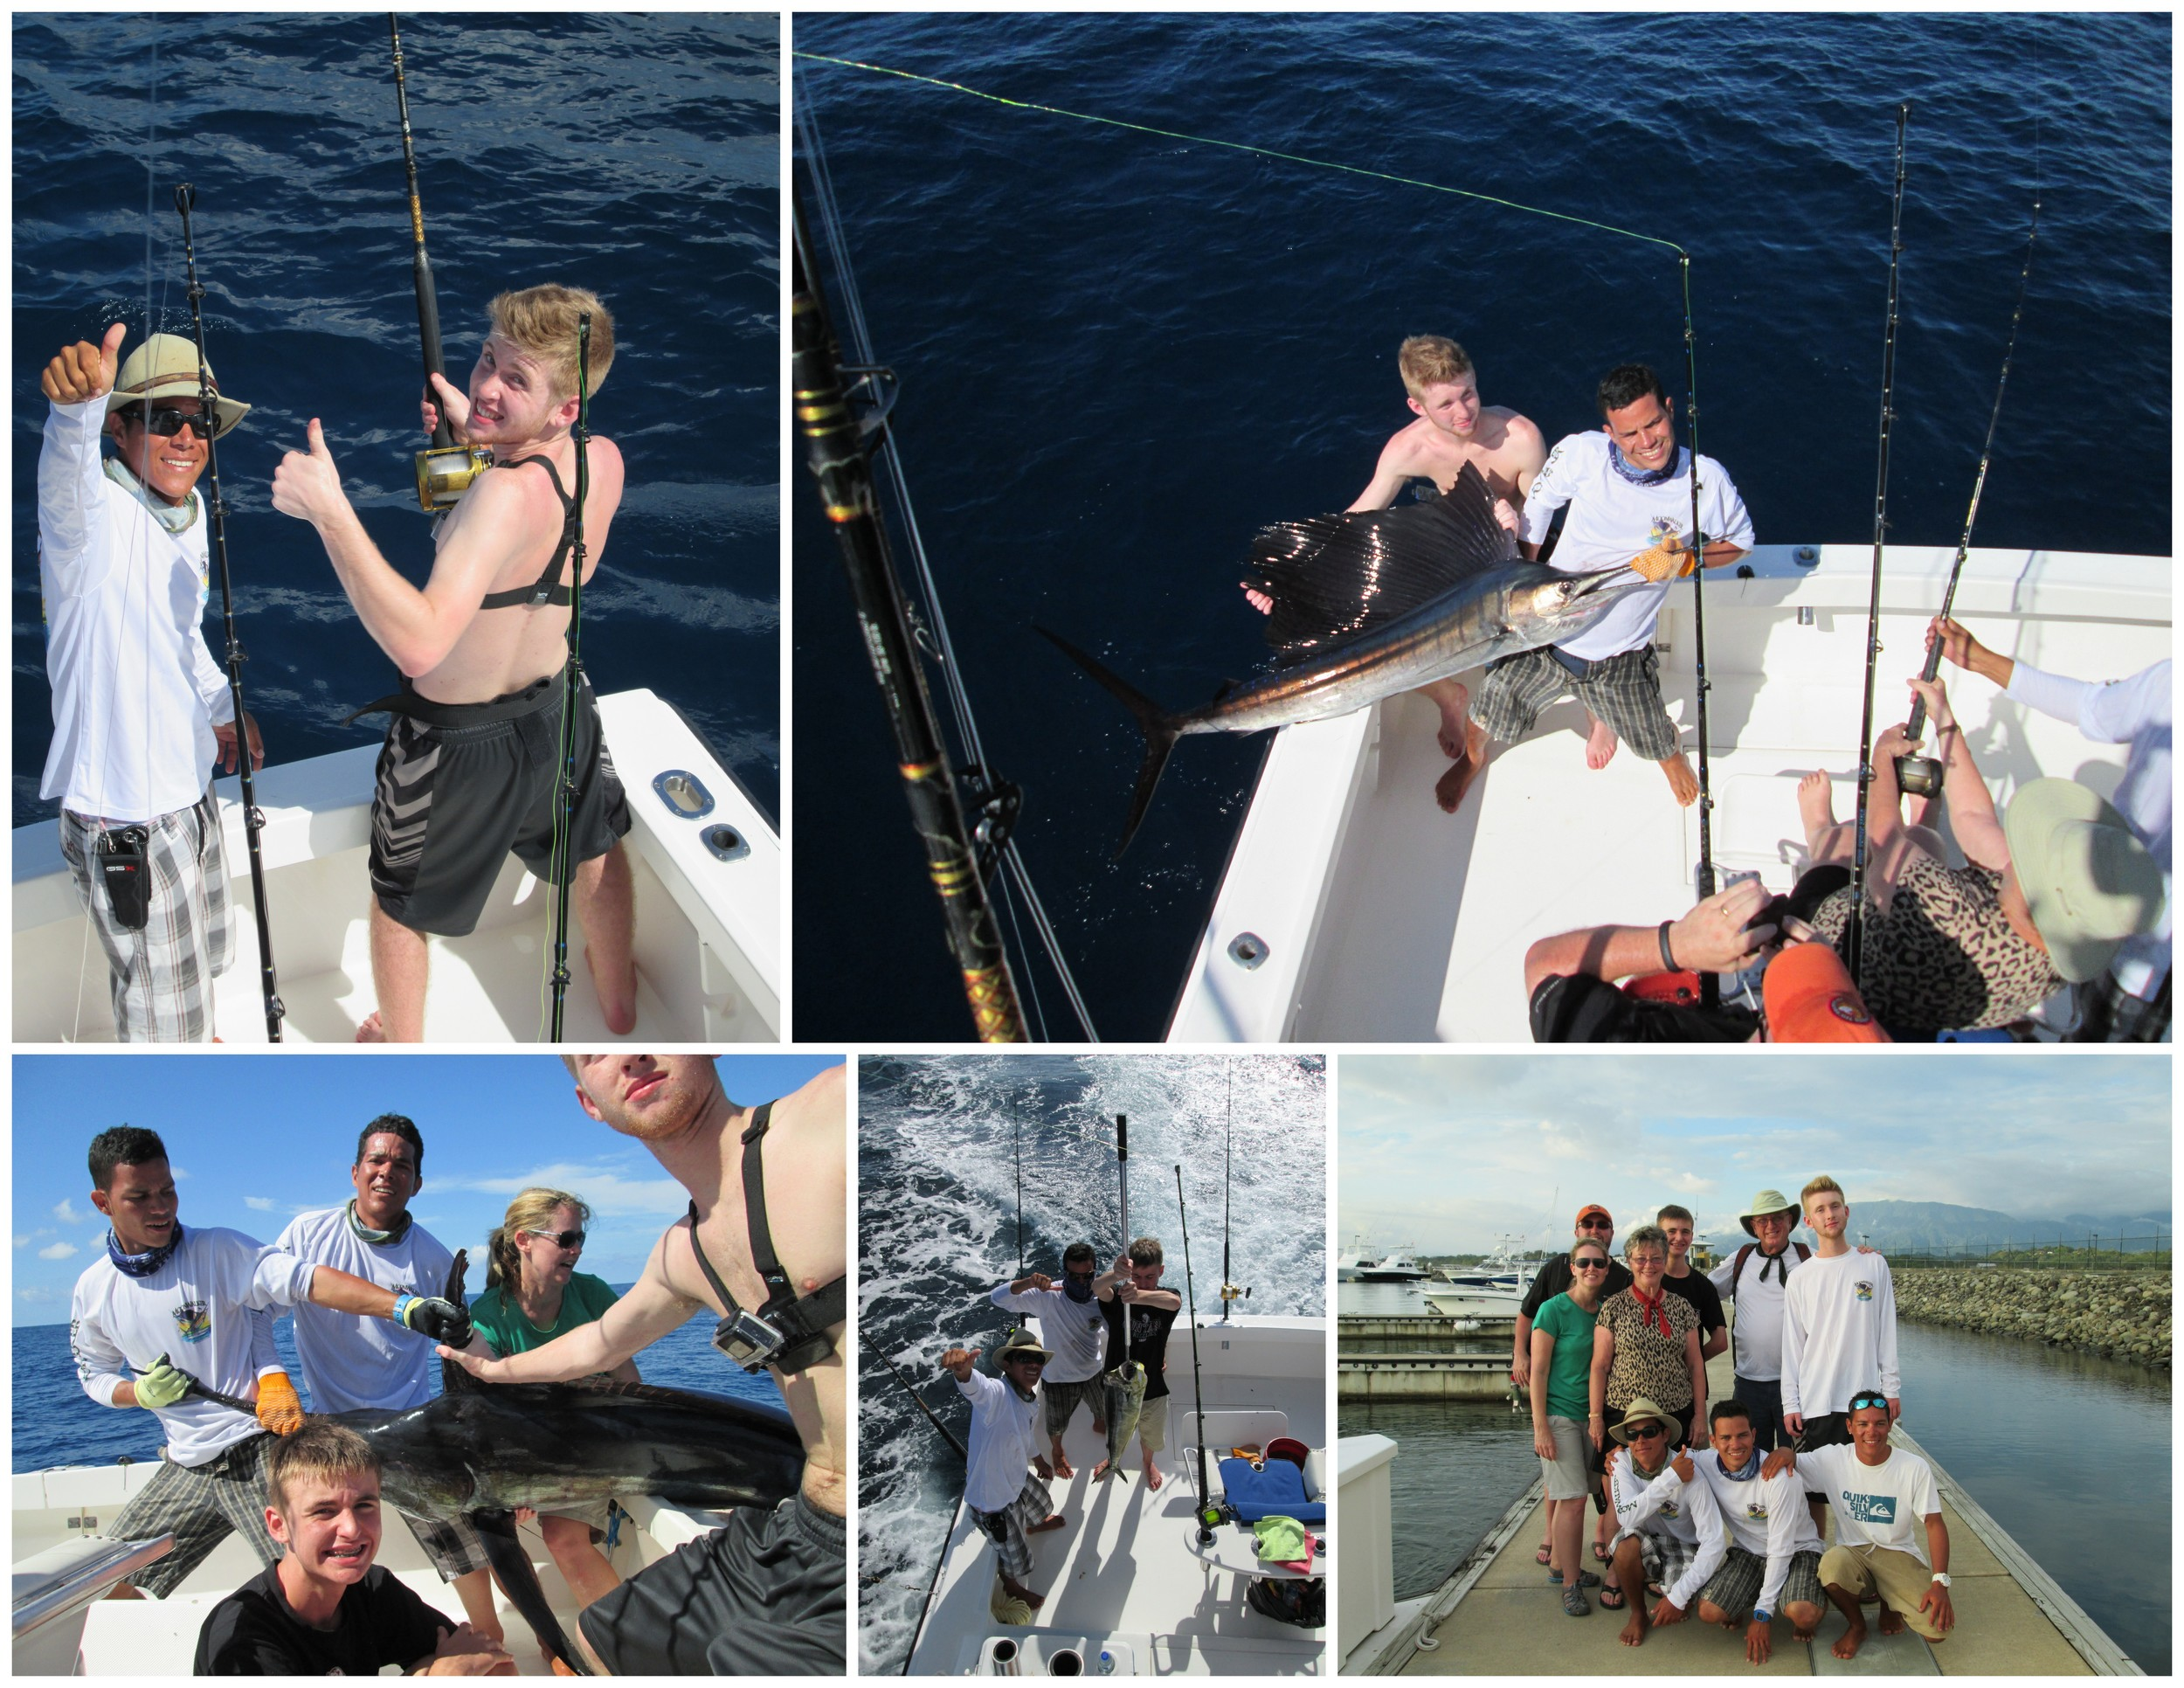 January 2       Chris Huwaldt and his family spent the day offshore and stellar it was for them! Raising 3 Blue Marlin and releasing 2 of them. Release of 3 Sailfish and 1 Mahi Mahi